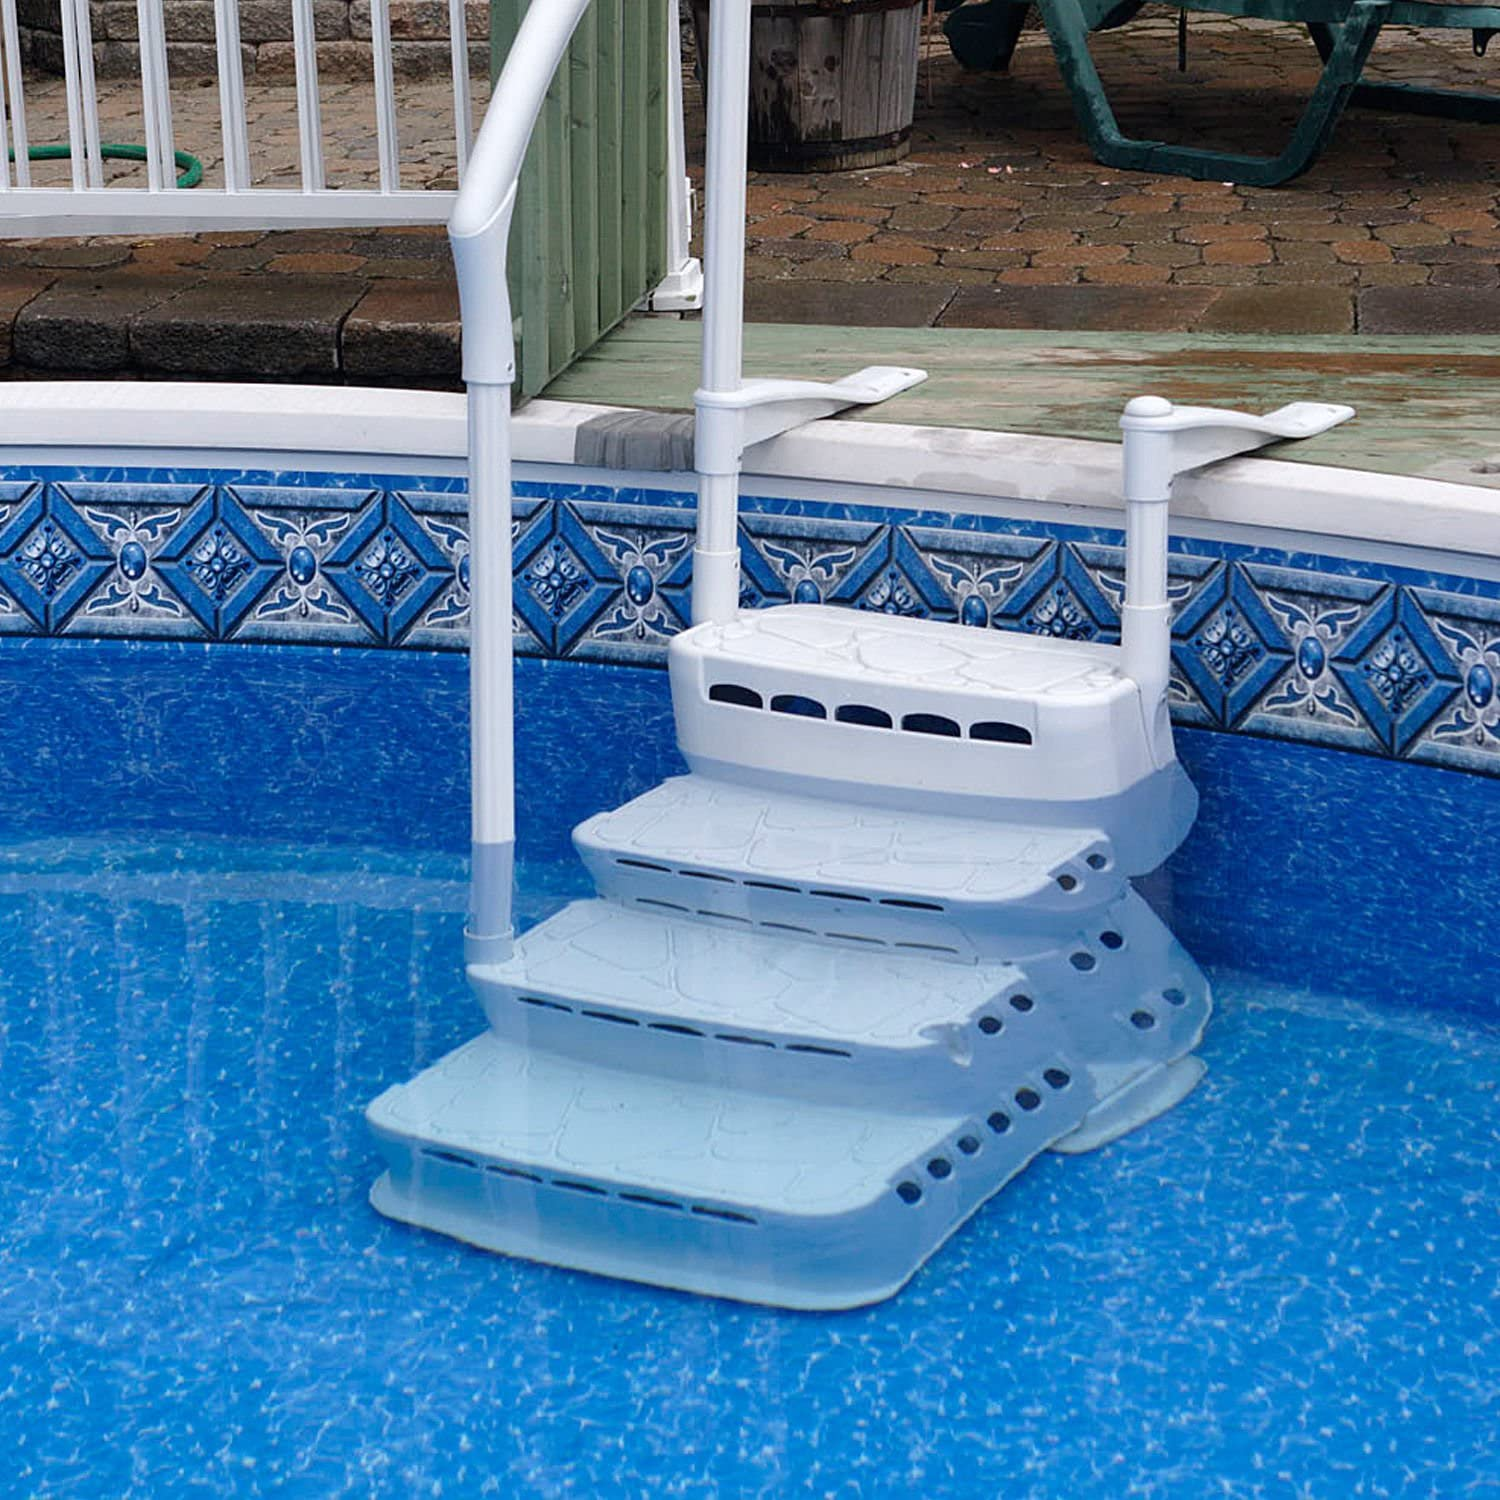 Miganeo empotrable Escaleras 120 – 135 cm Pool Escalera para Piscina de hasta 159 kg Carga: Amazon.es: Jardín